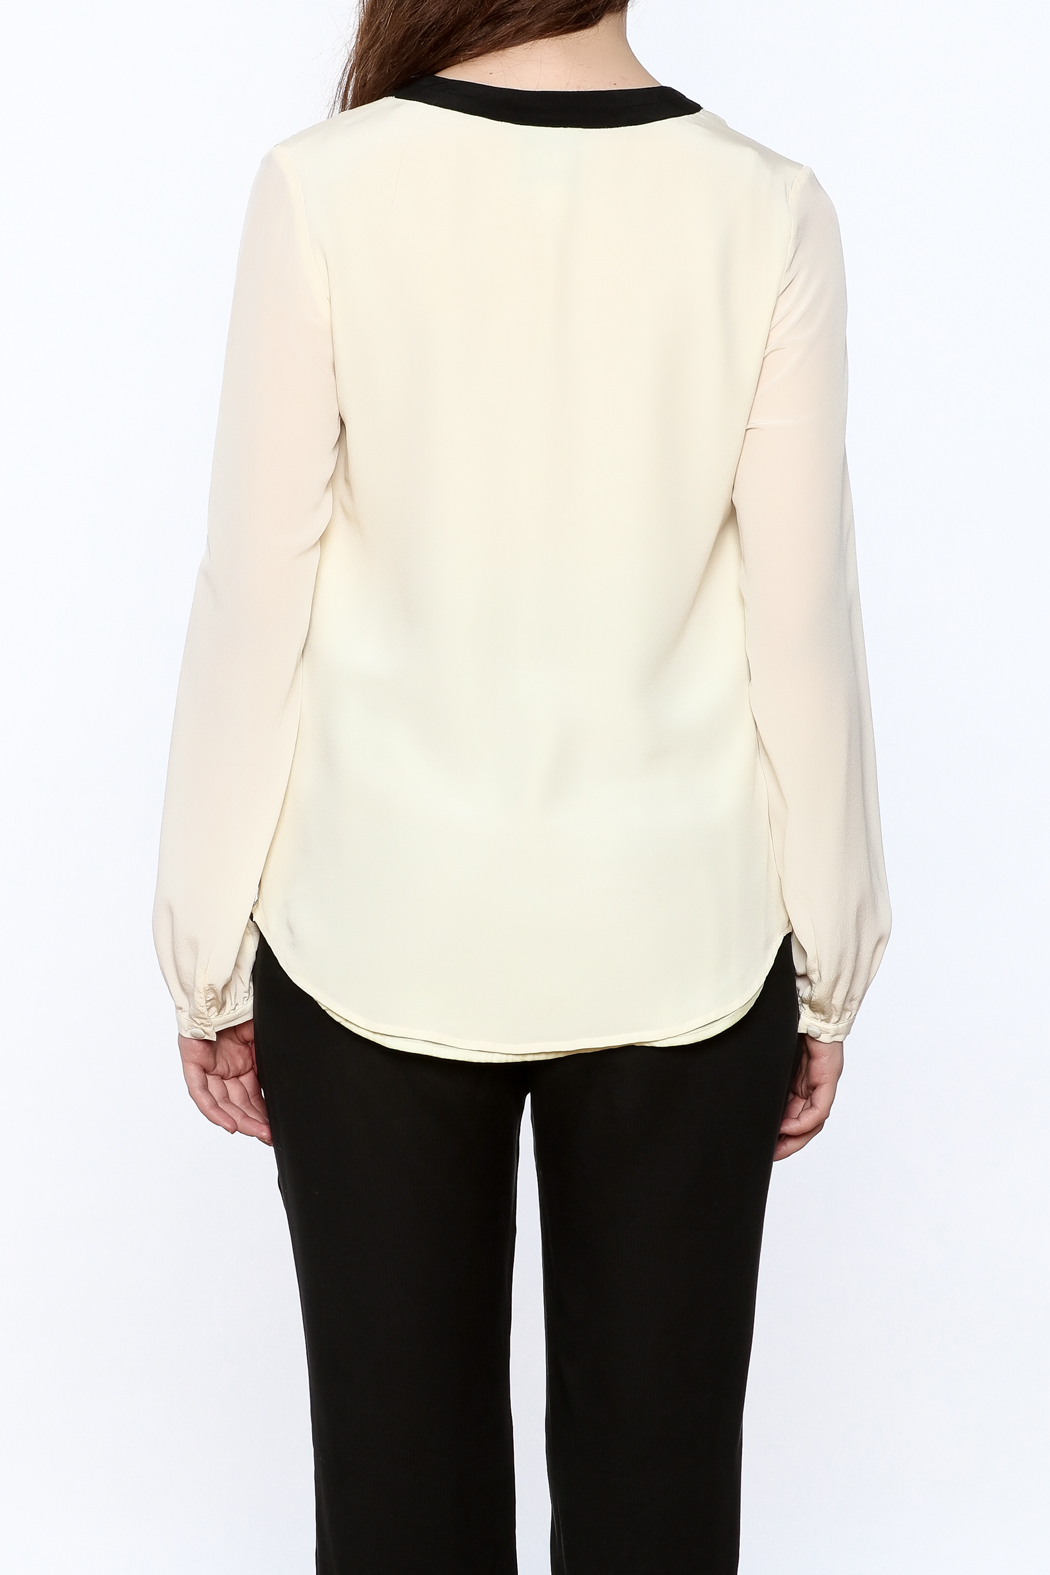 By Smith Soiree Contrast Blouse - Back Cropped Image